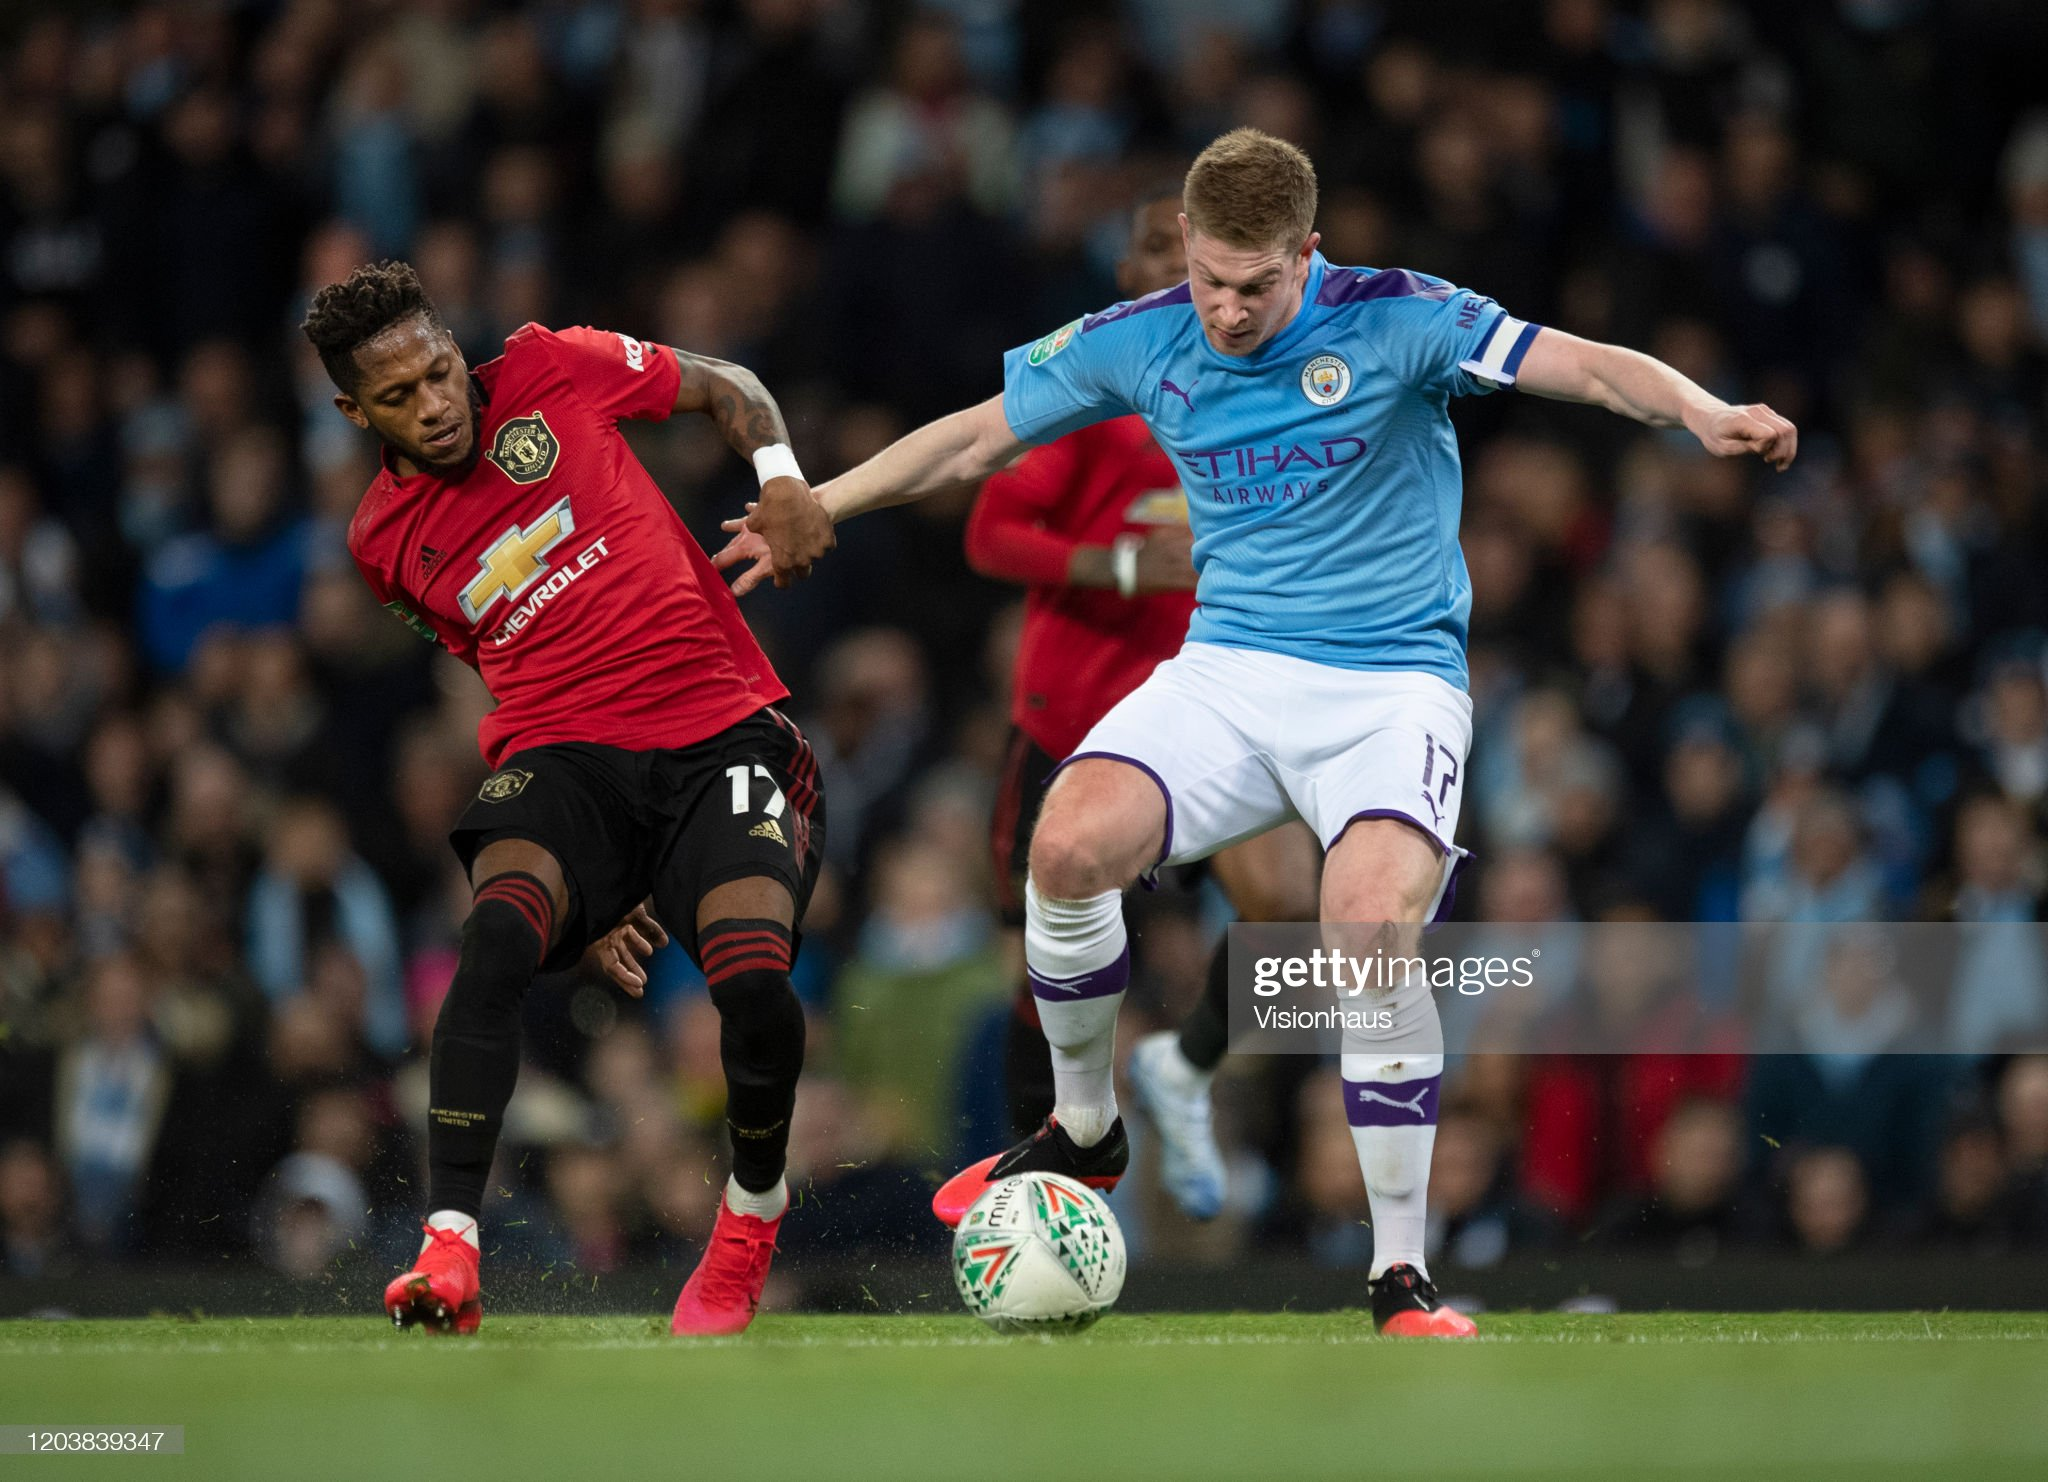 Manchester United vs Manchester City Preview, prediction and odds